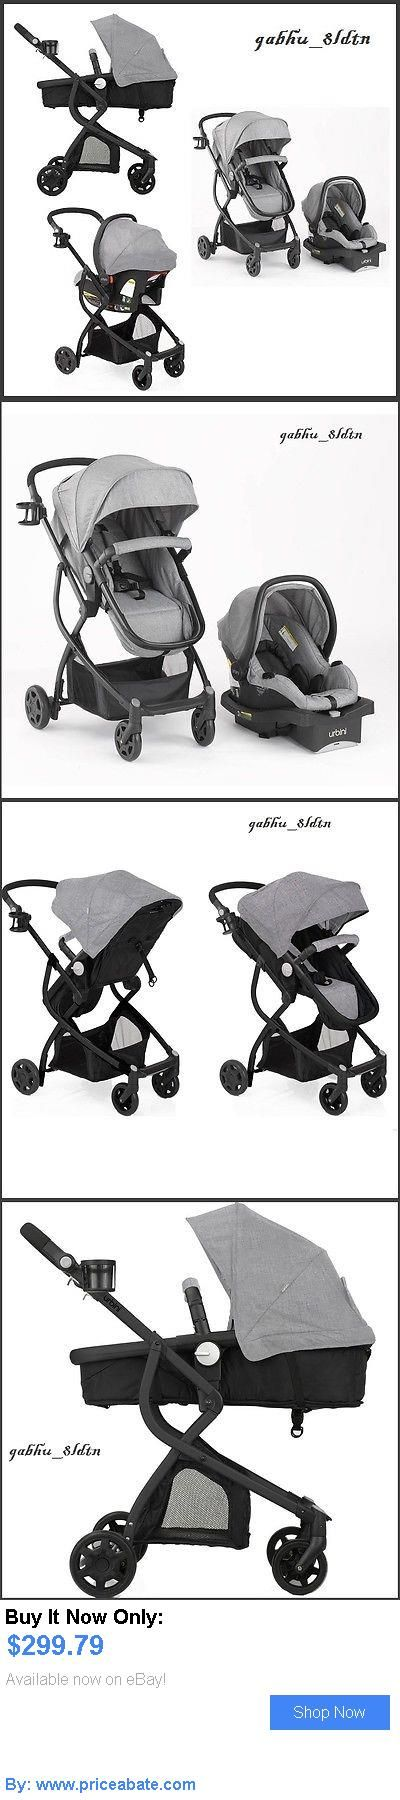 baby And kid stuff: Baby Stroller Car Seat 3In1 Travel System Infant Carriage Buggy Bassinet New BUY IT NOW ONLY: $299.79 #priceabatebabykidstuff OR #priceabate